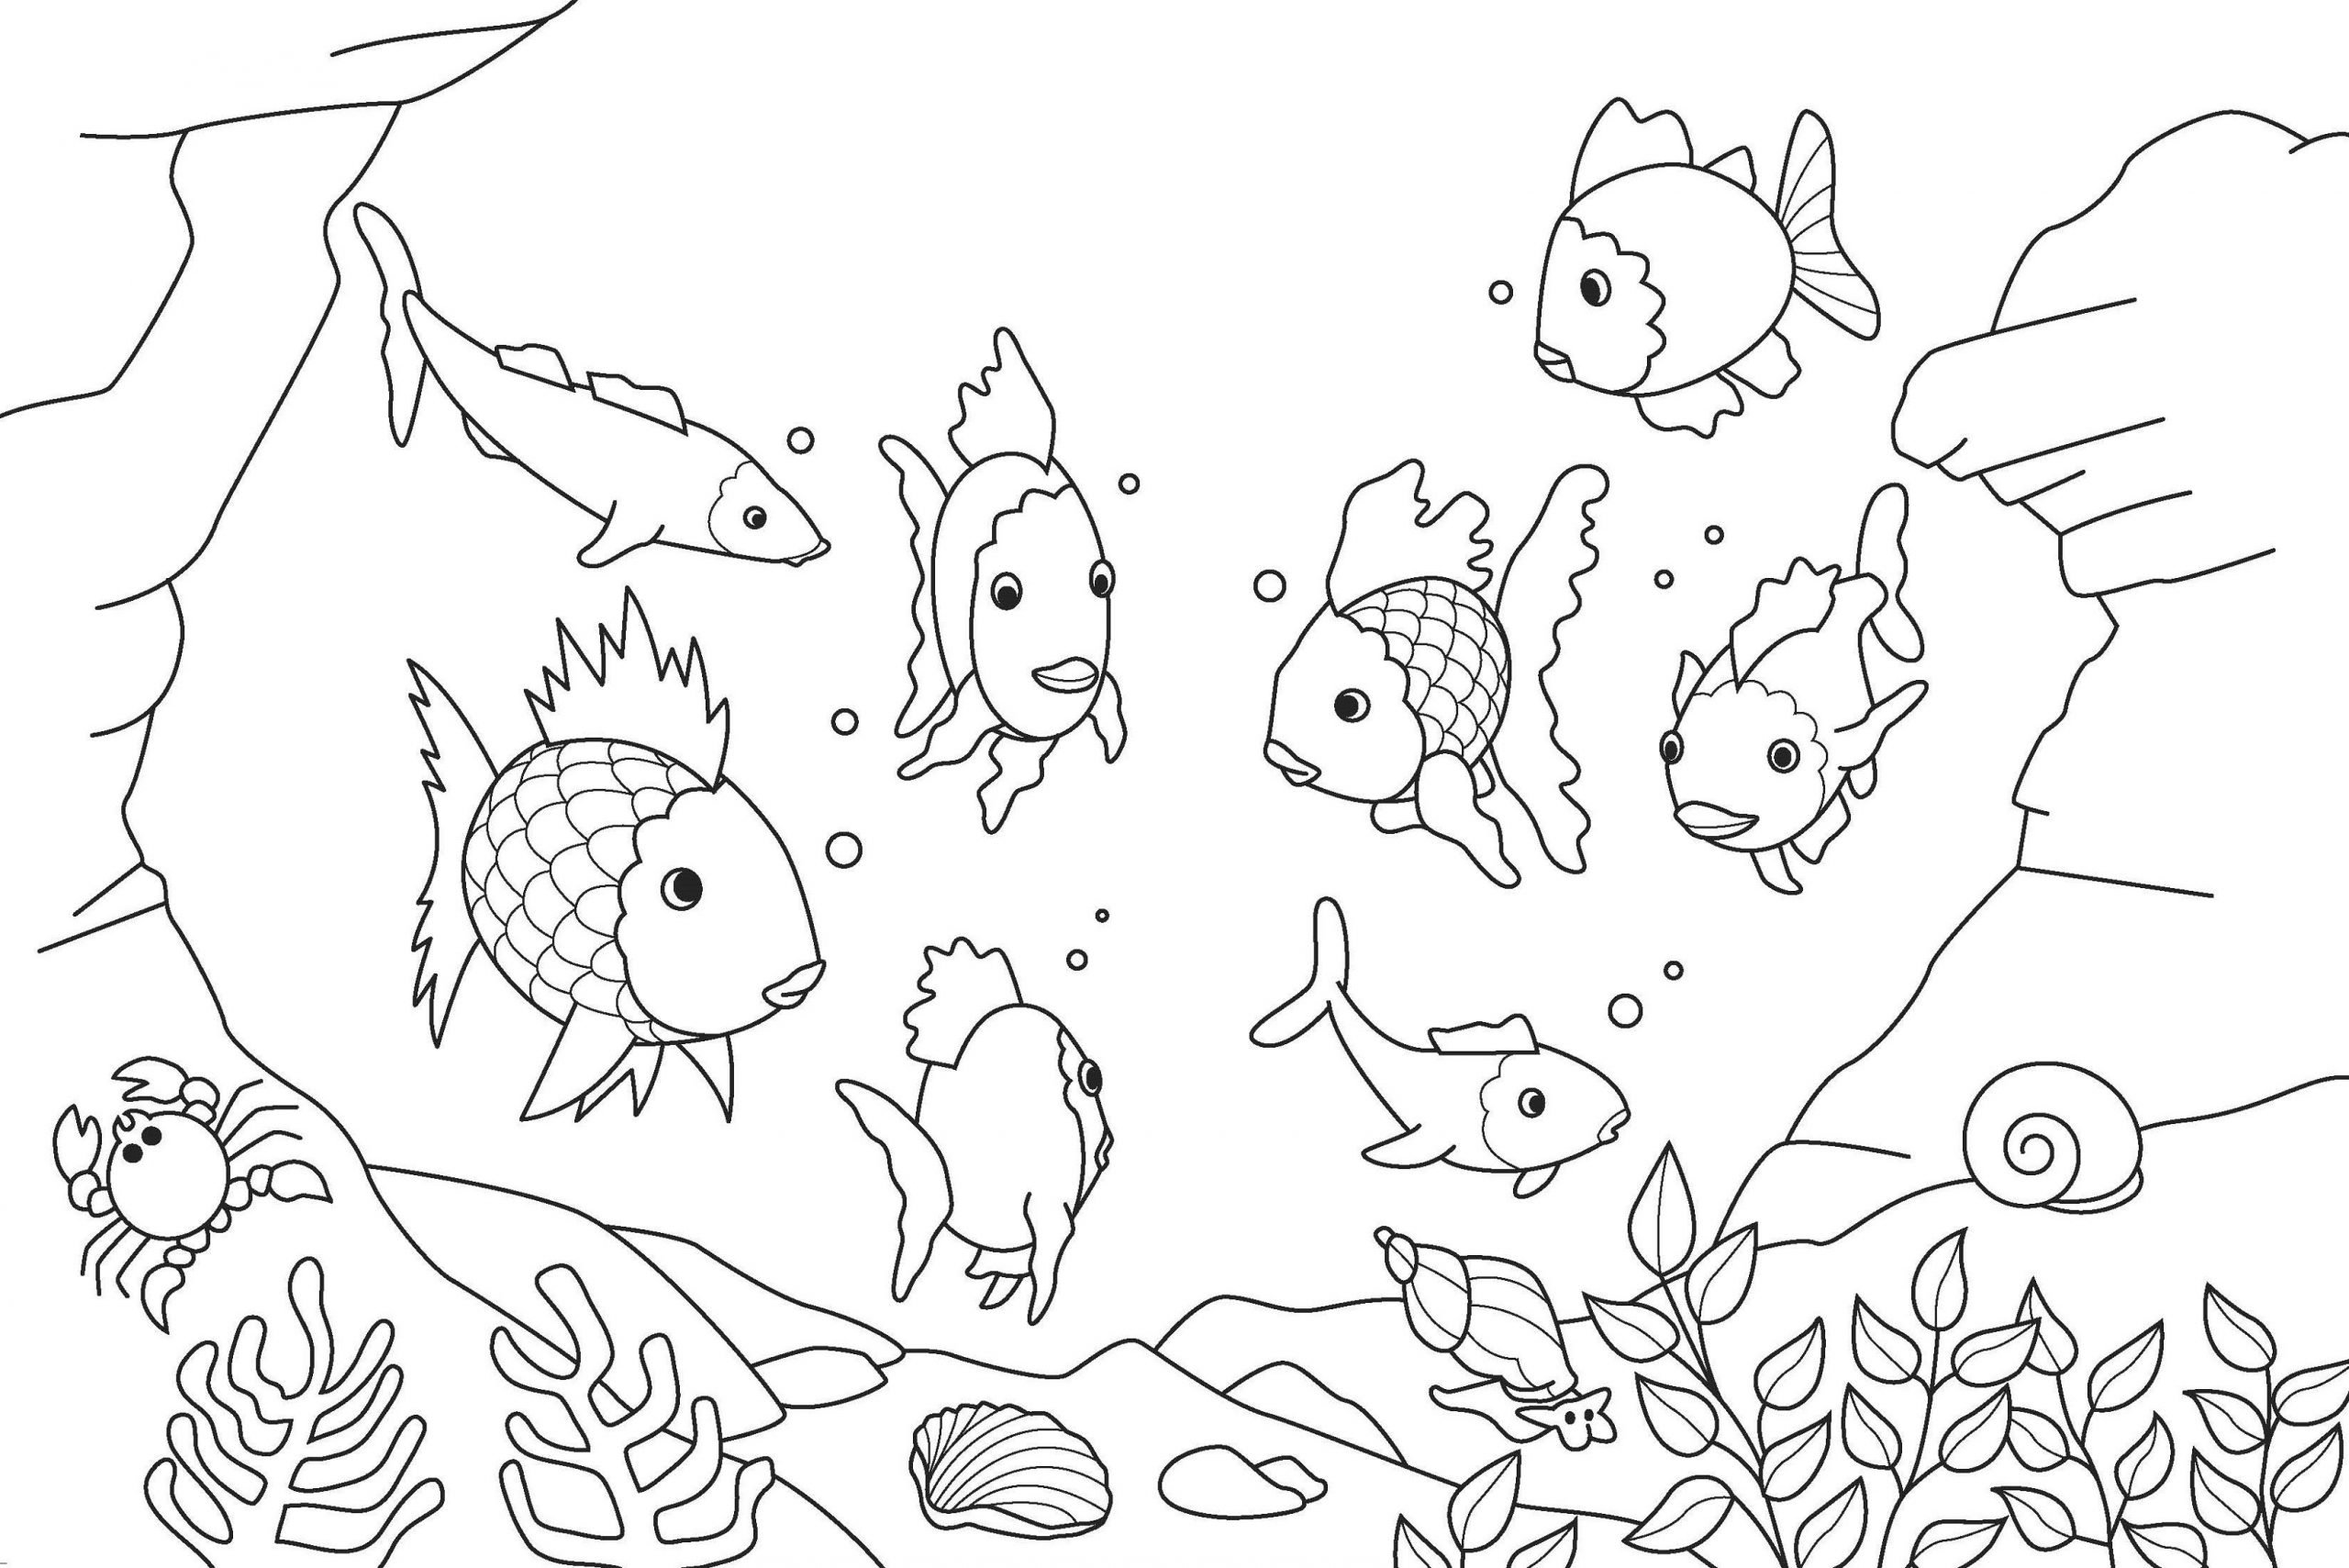 Rainbow Fish Printable Worksheets Fish Coloring Pages for Kids K5 Worksheets